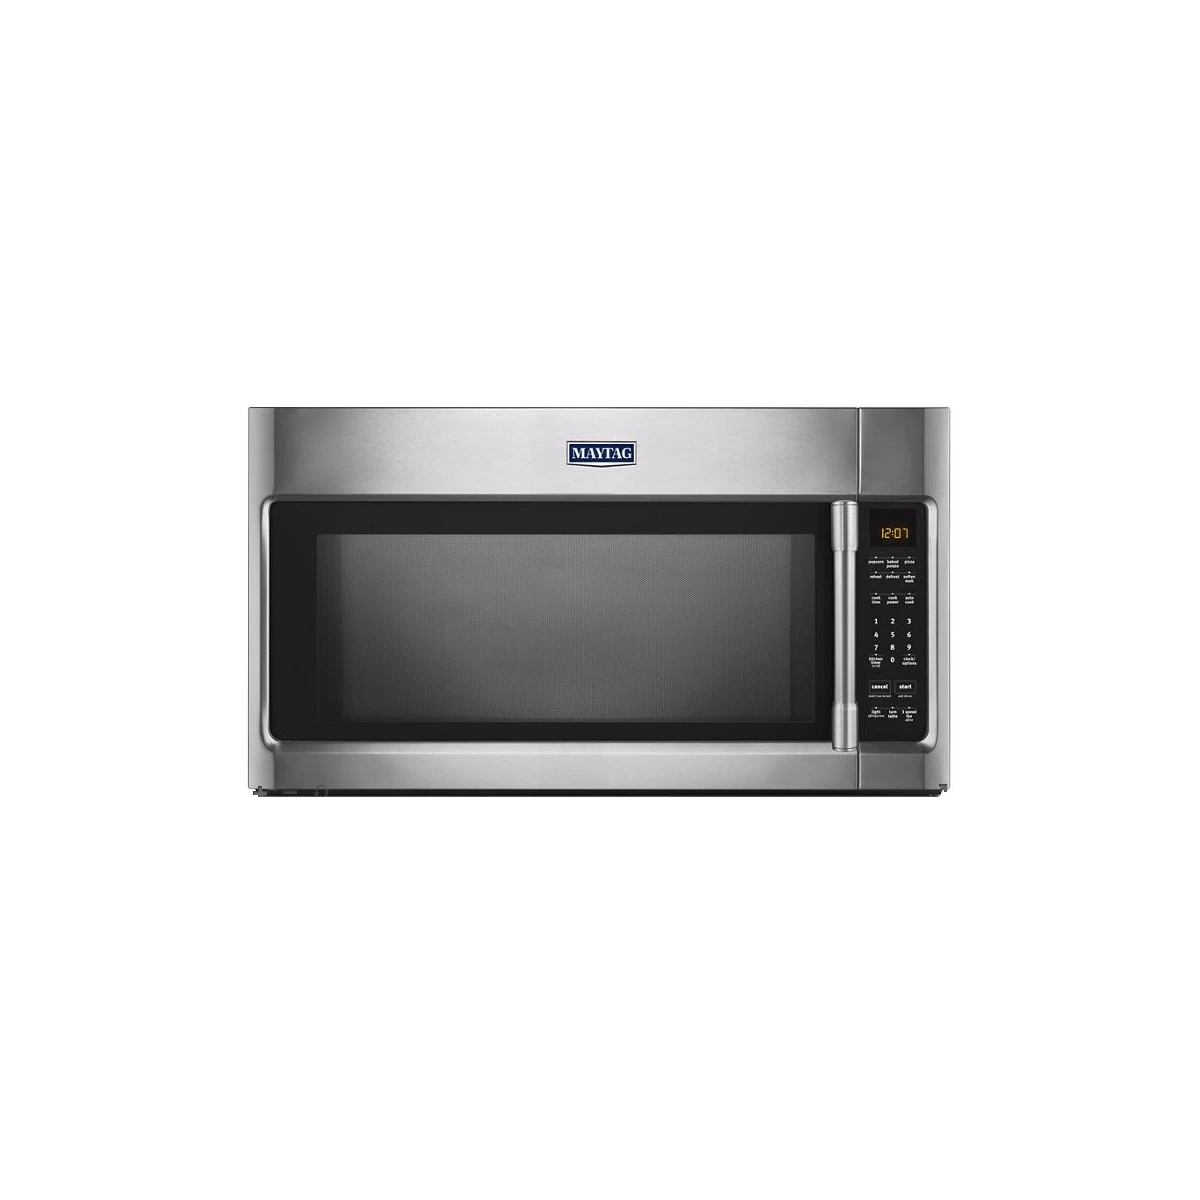 maytag microwave ovens cooking